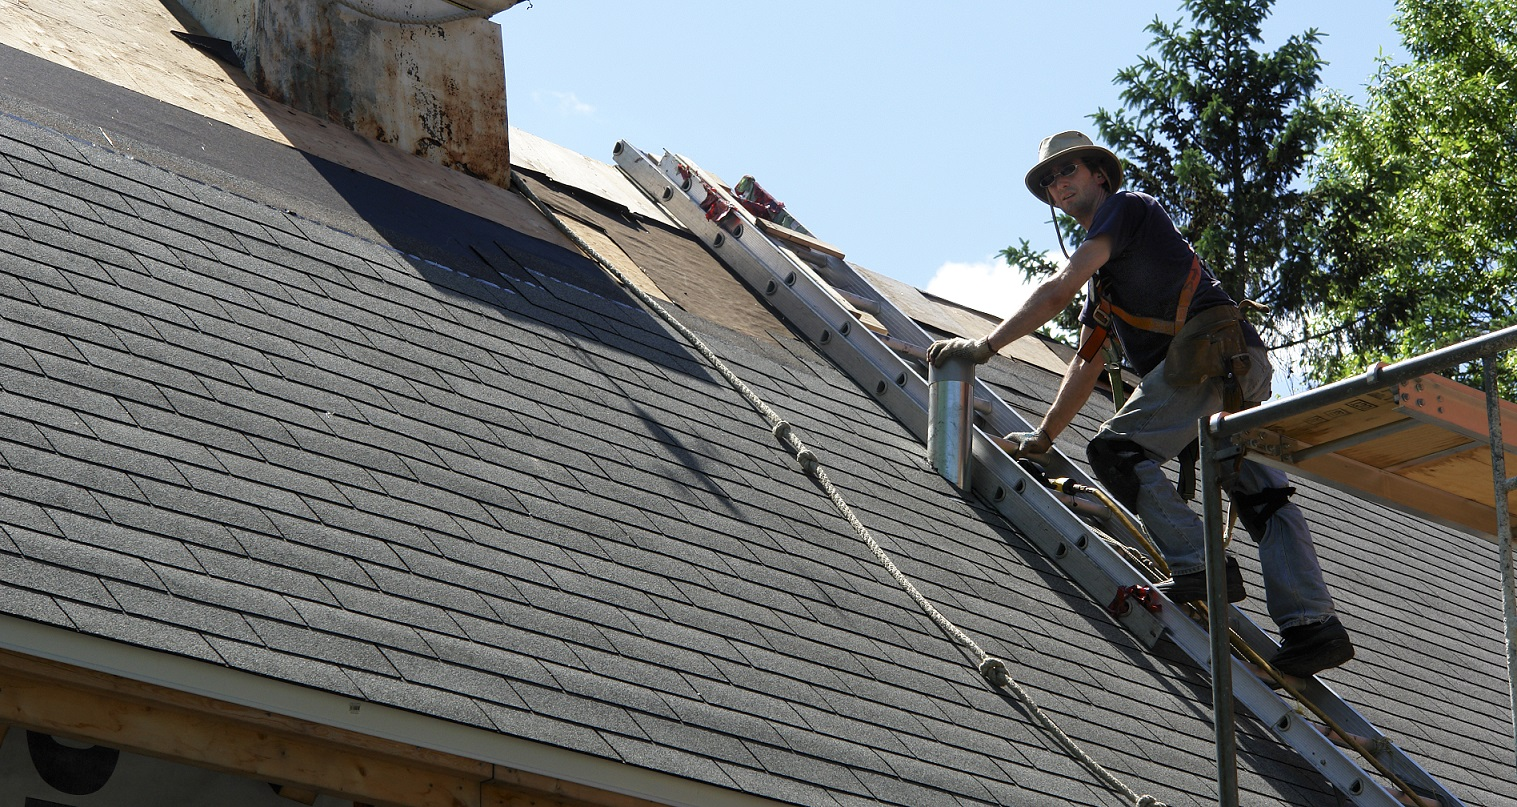 Winter-proof Your Roof with Ferris Home Improvements